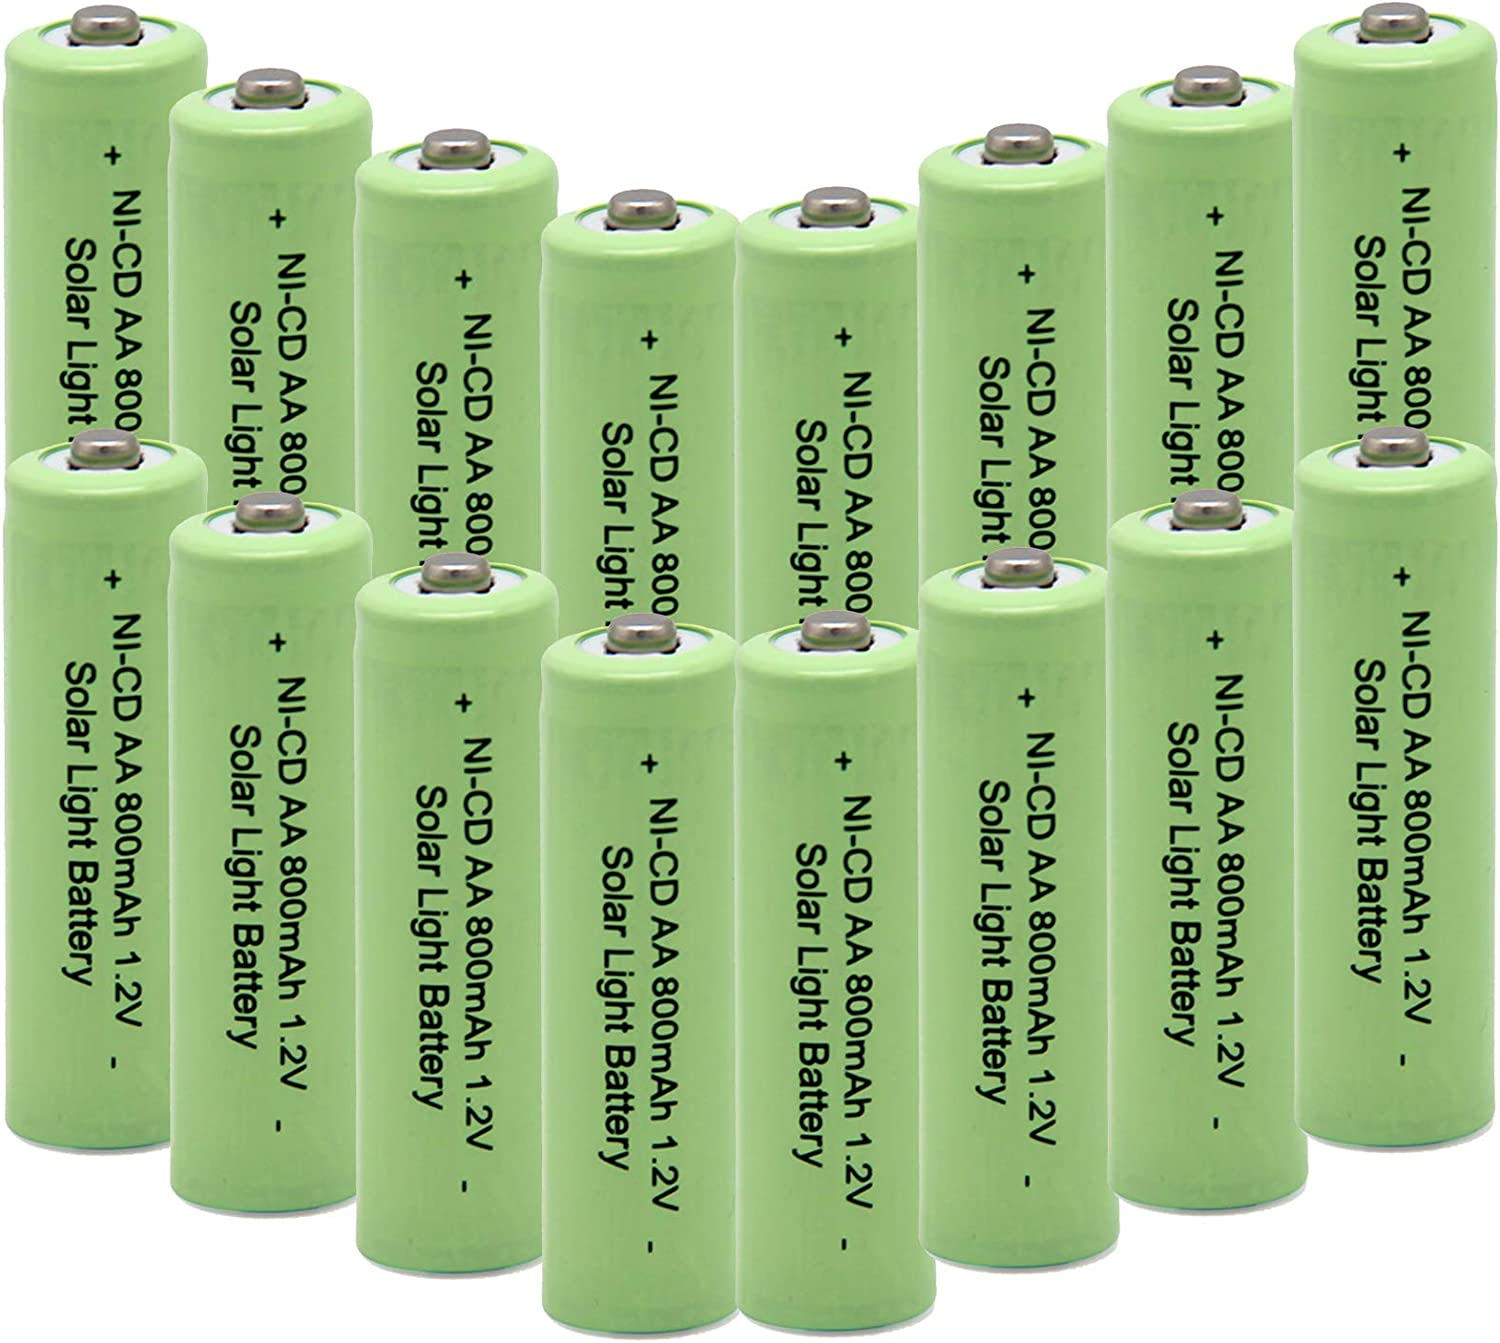 QBLPOWER Ni-CD AA 800mAh 1.2V Rechargeable Battery for Solar Outdoor Lights Lamp Garden Yard Lawn(16 Pieces)